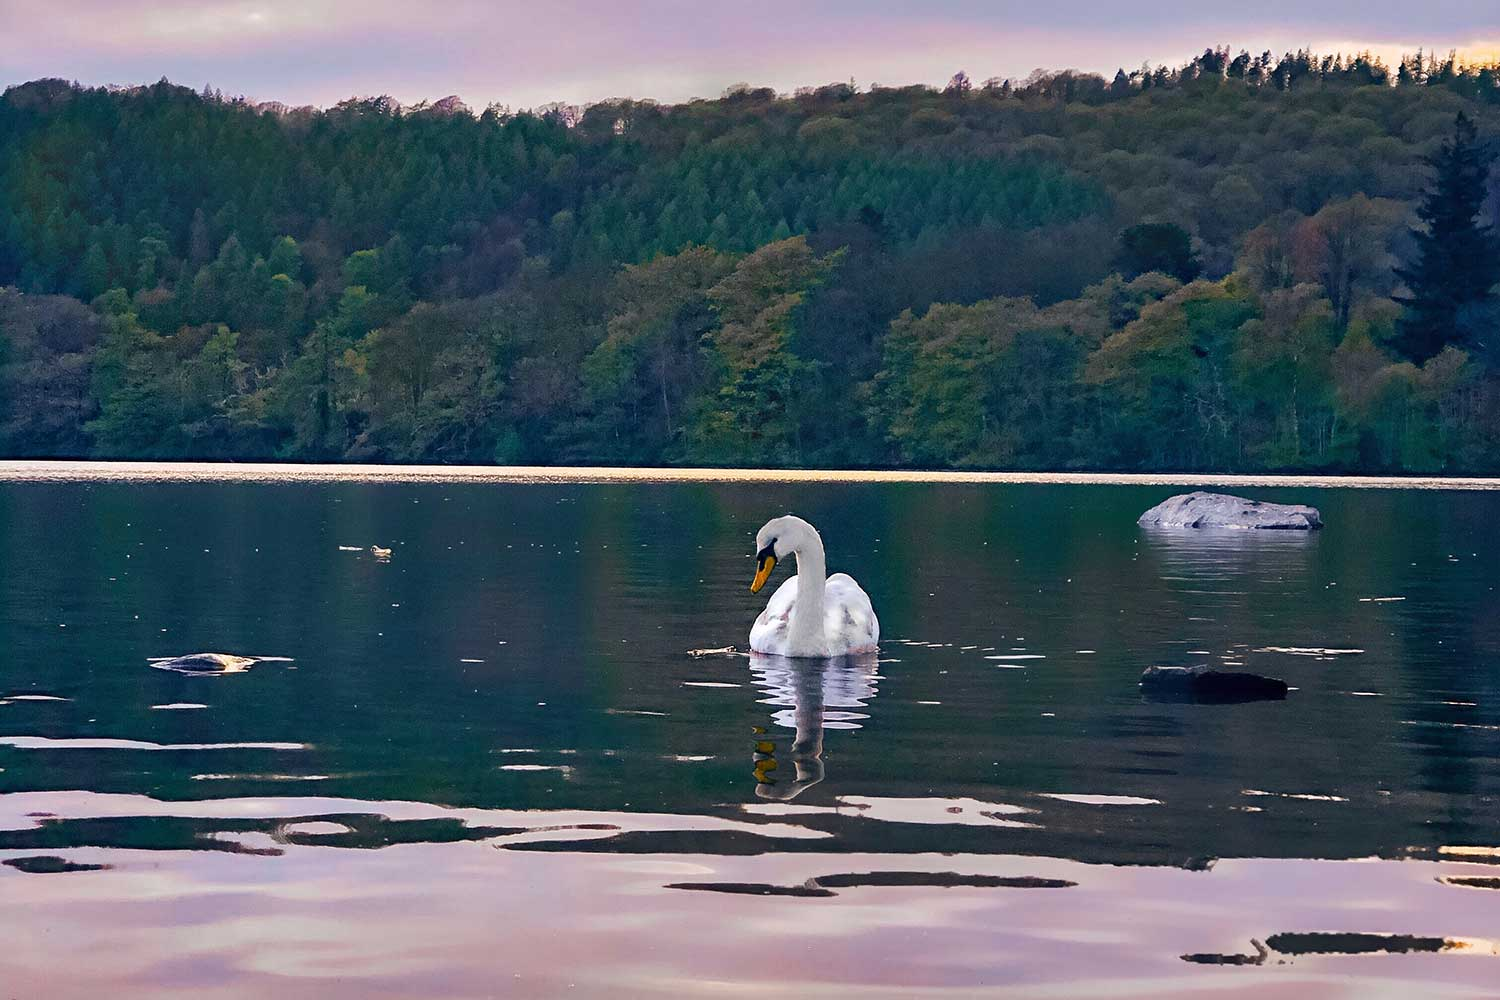 windermere-accommodation-self-catering-OSPREY25